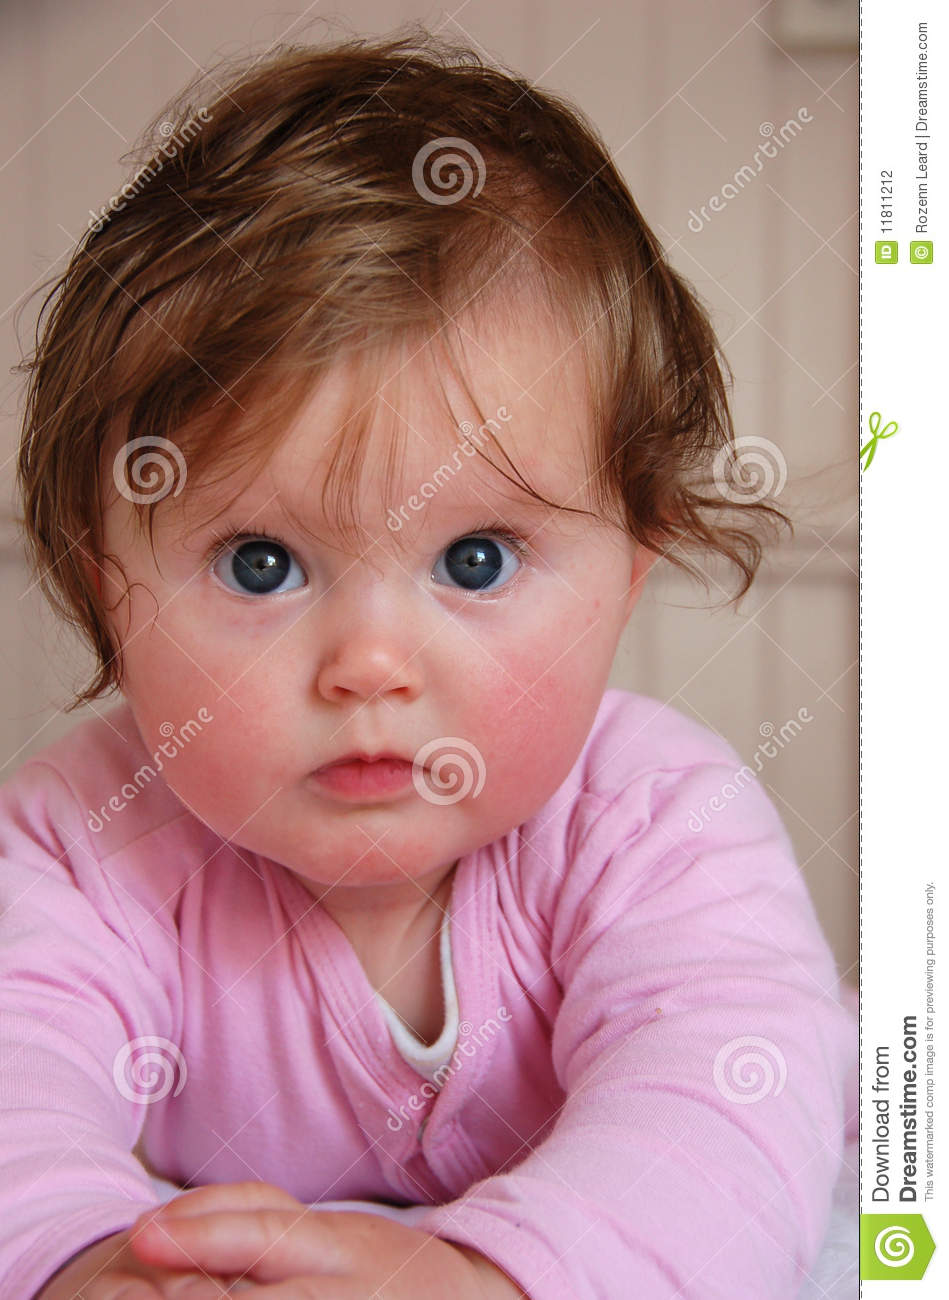 Cute Mixed Baby Girl With Blue Eyes